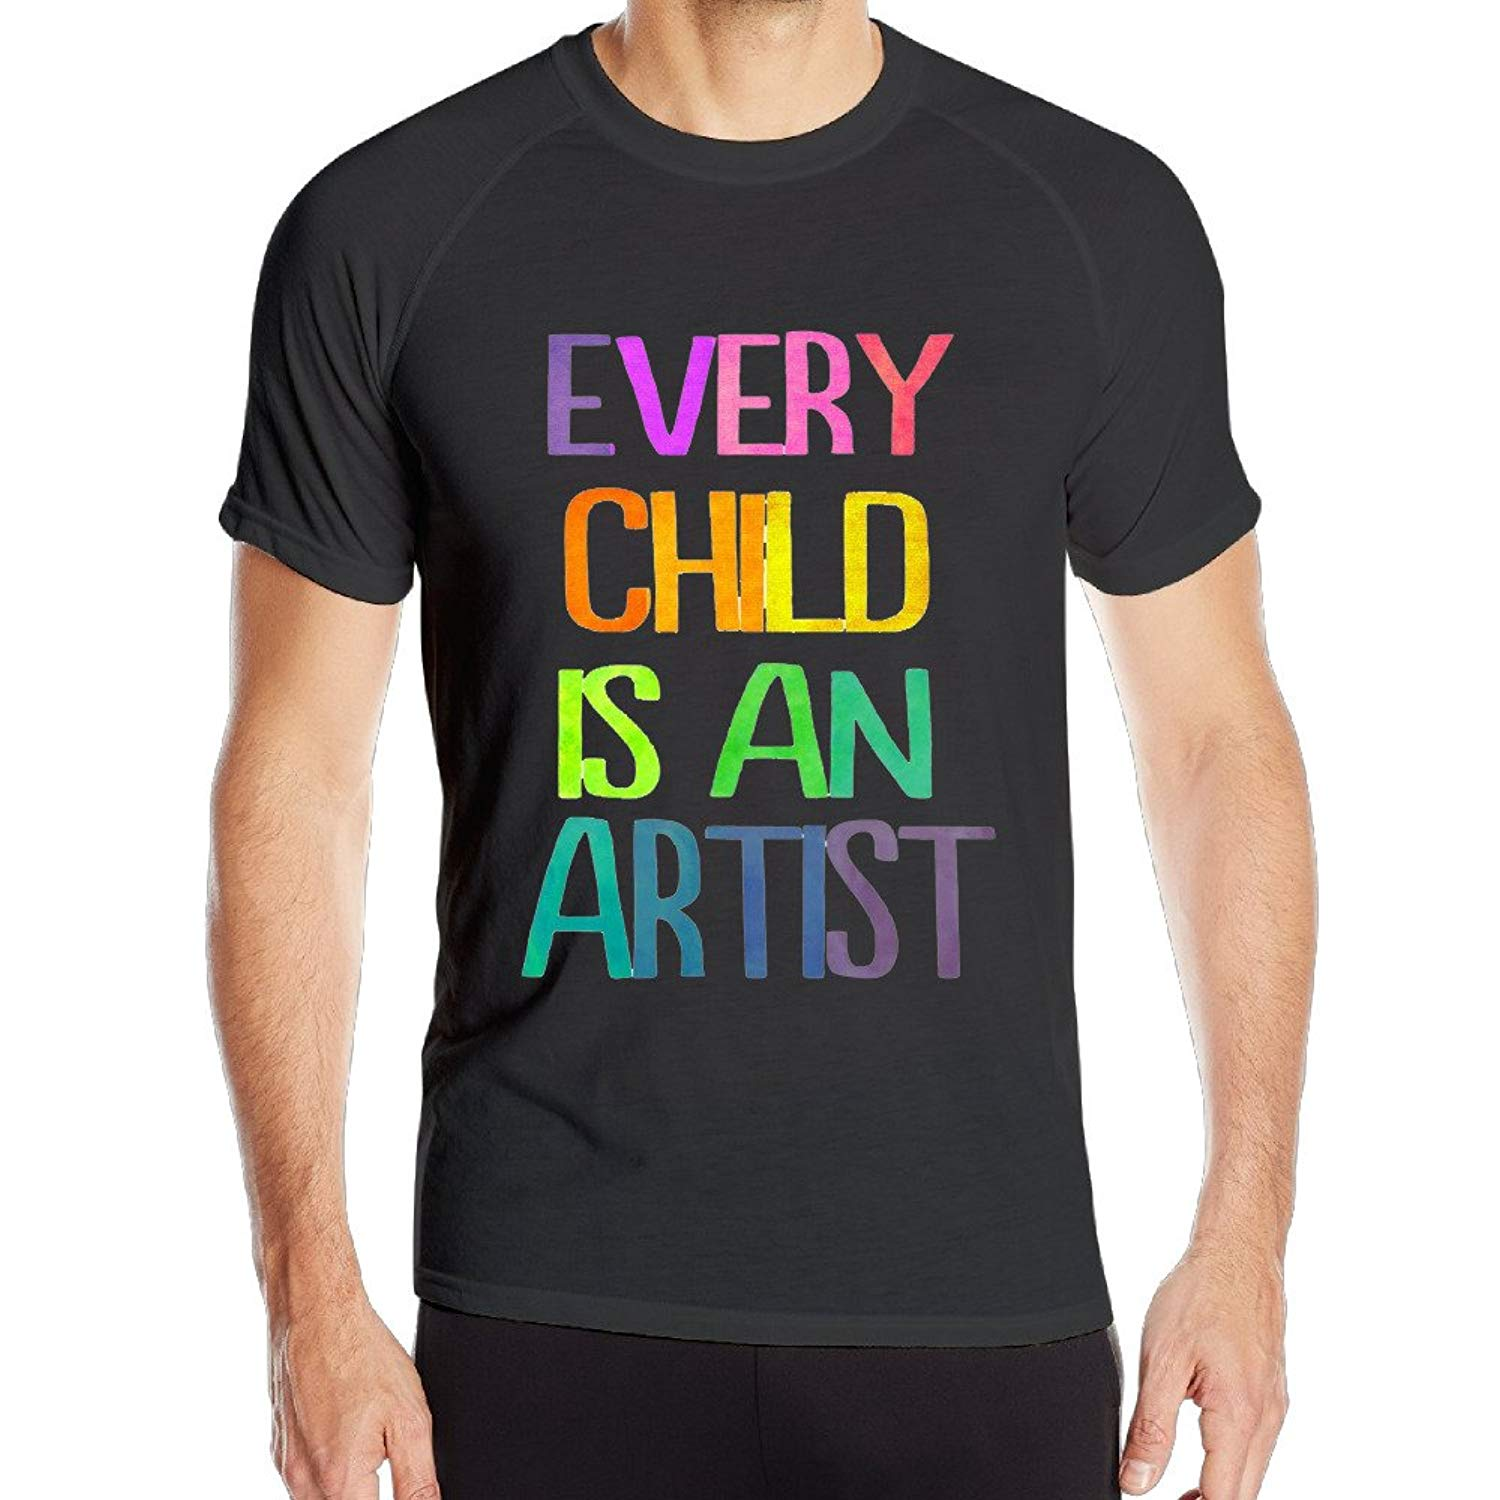 439dc405332c Cheap T Shirts With Sayings, find T Shirts With Sayings deals on ...